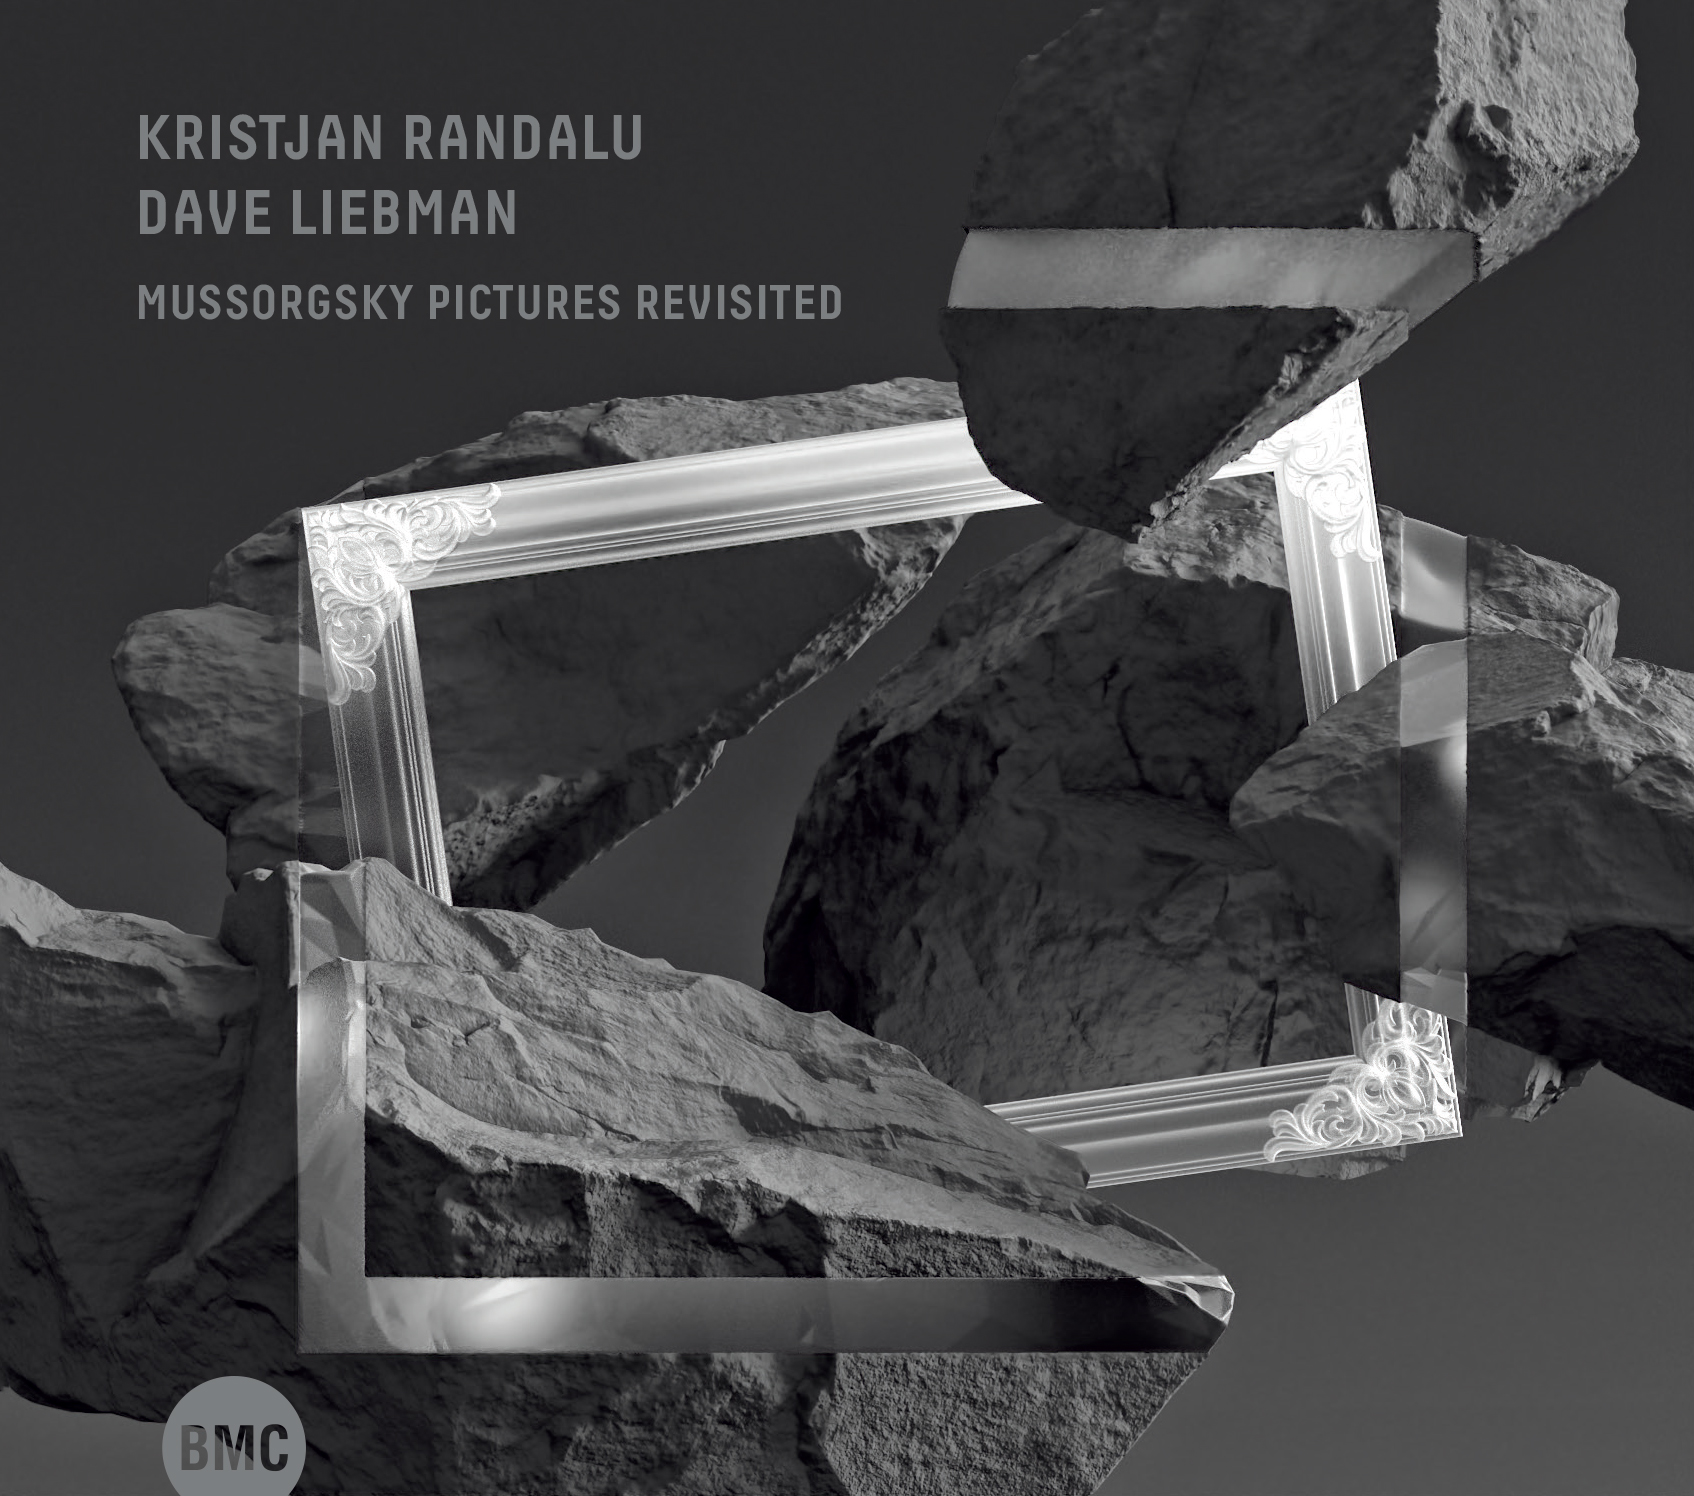 randalu_liebman_mussorgsky_pictures_front_cover_286_300_rgb.jpg